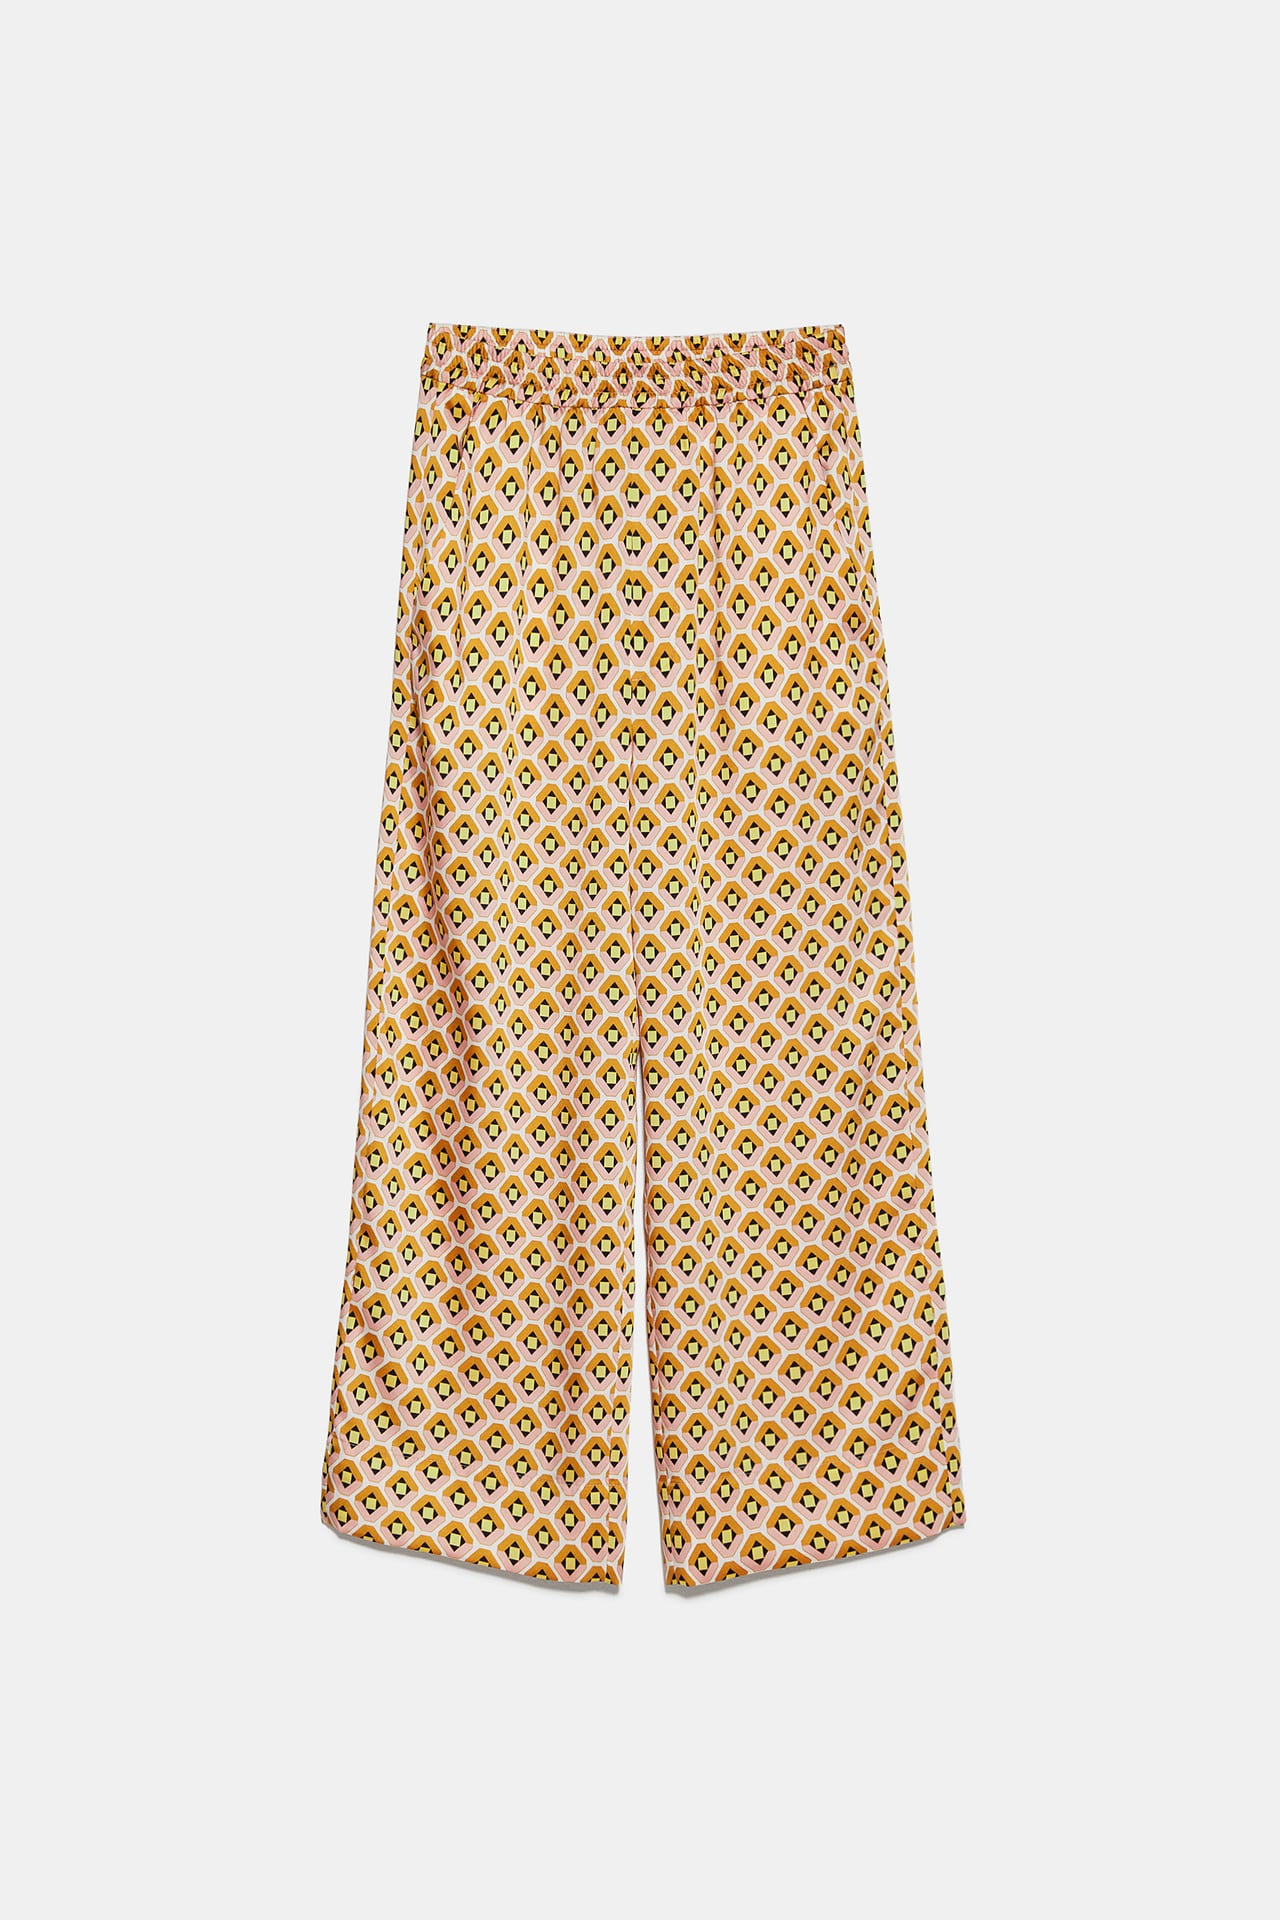 Image 1 of GEOMETRIC PRINT TROUSERS from Zadar